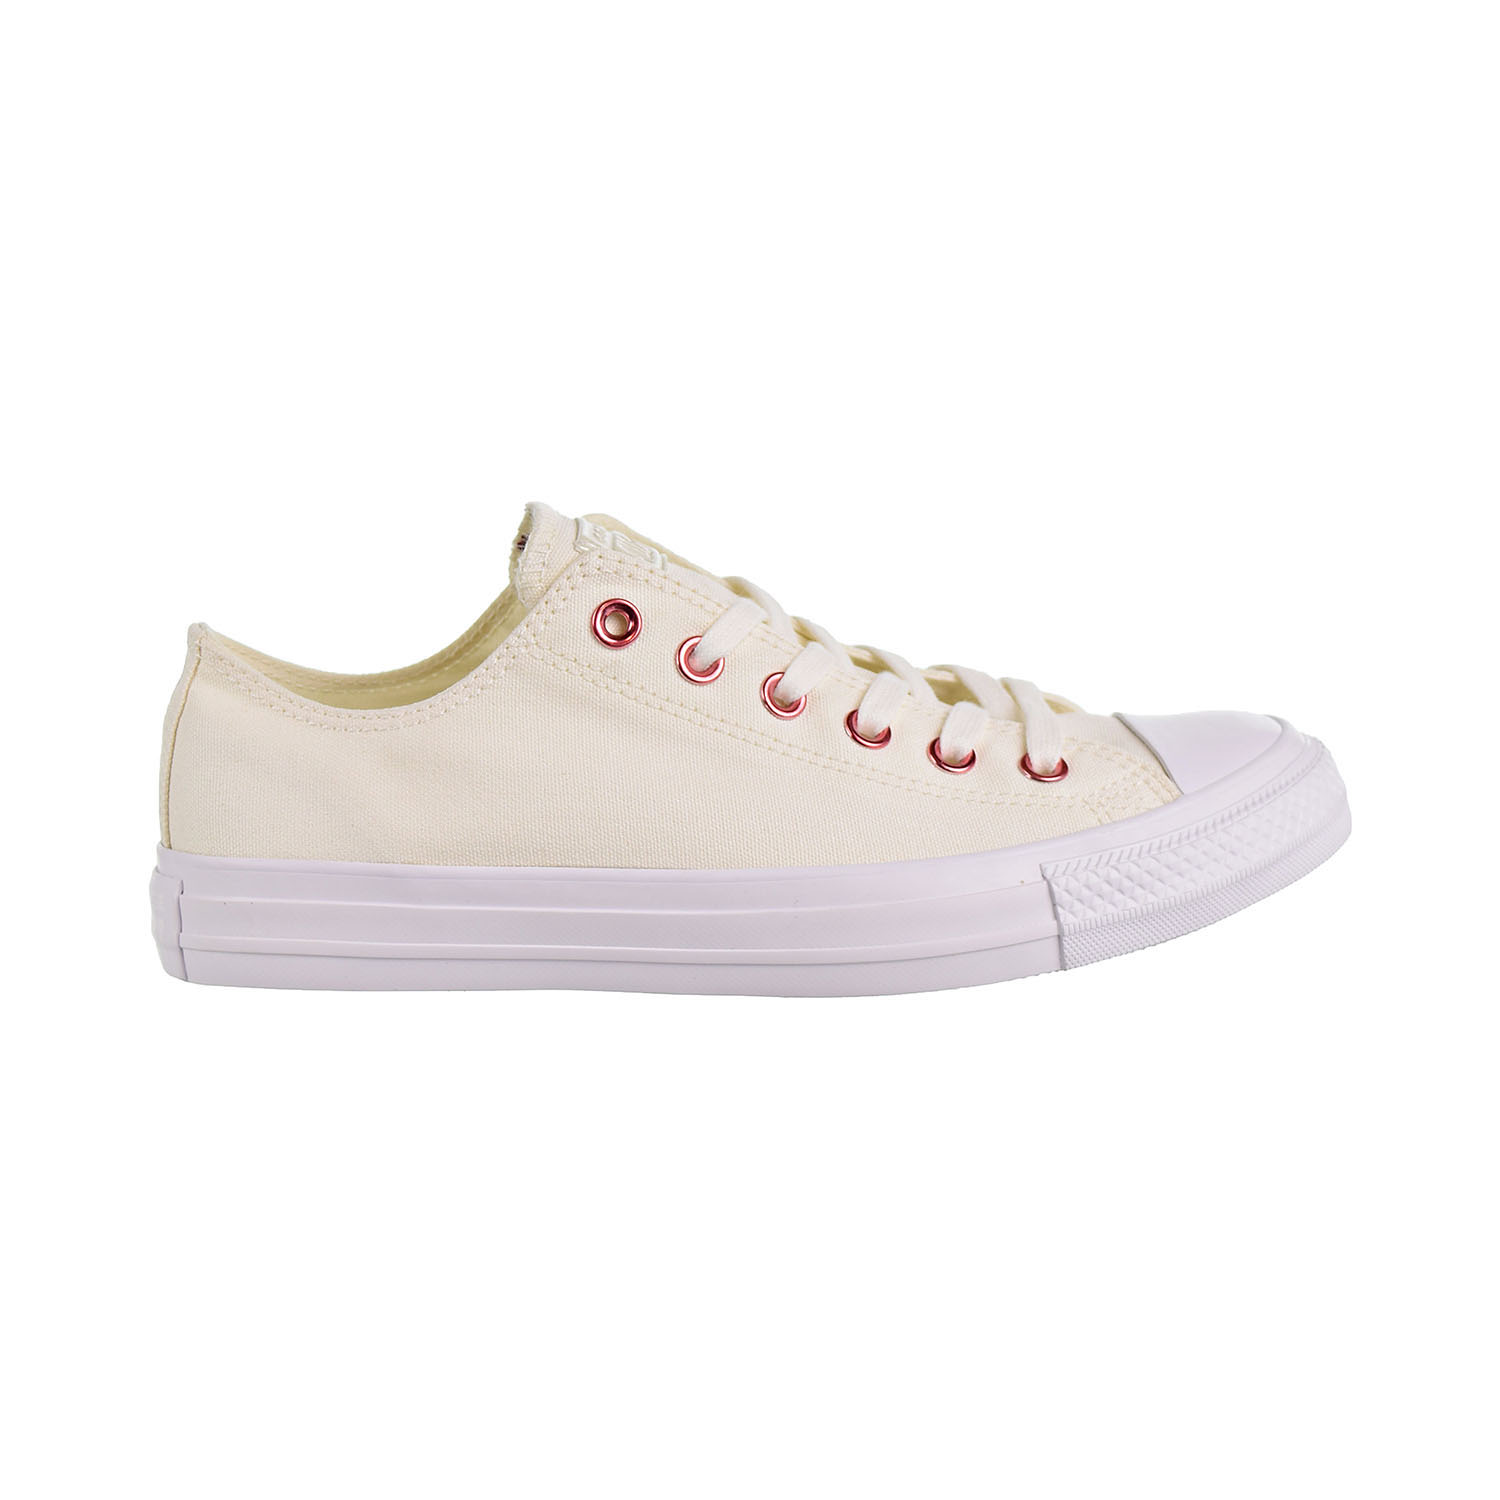 c668cc9d3d53 Details about Converse Chuck Taylor All Star Ox Hearts Unisex Shoes  Egret Rhubarb 163283c